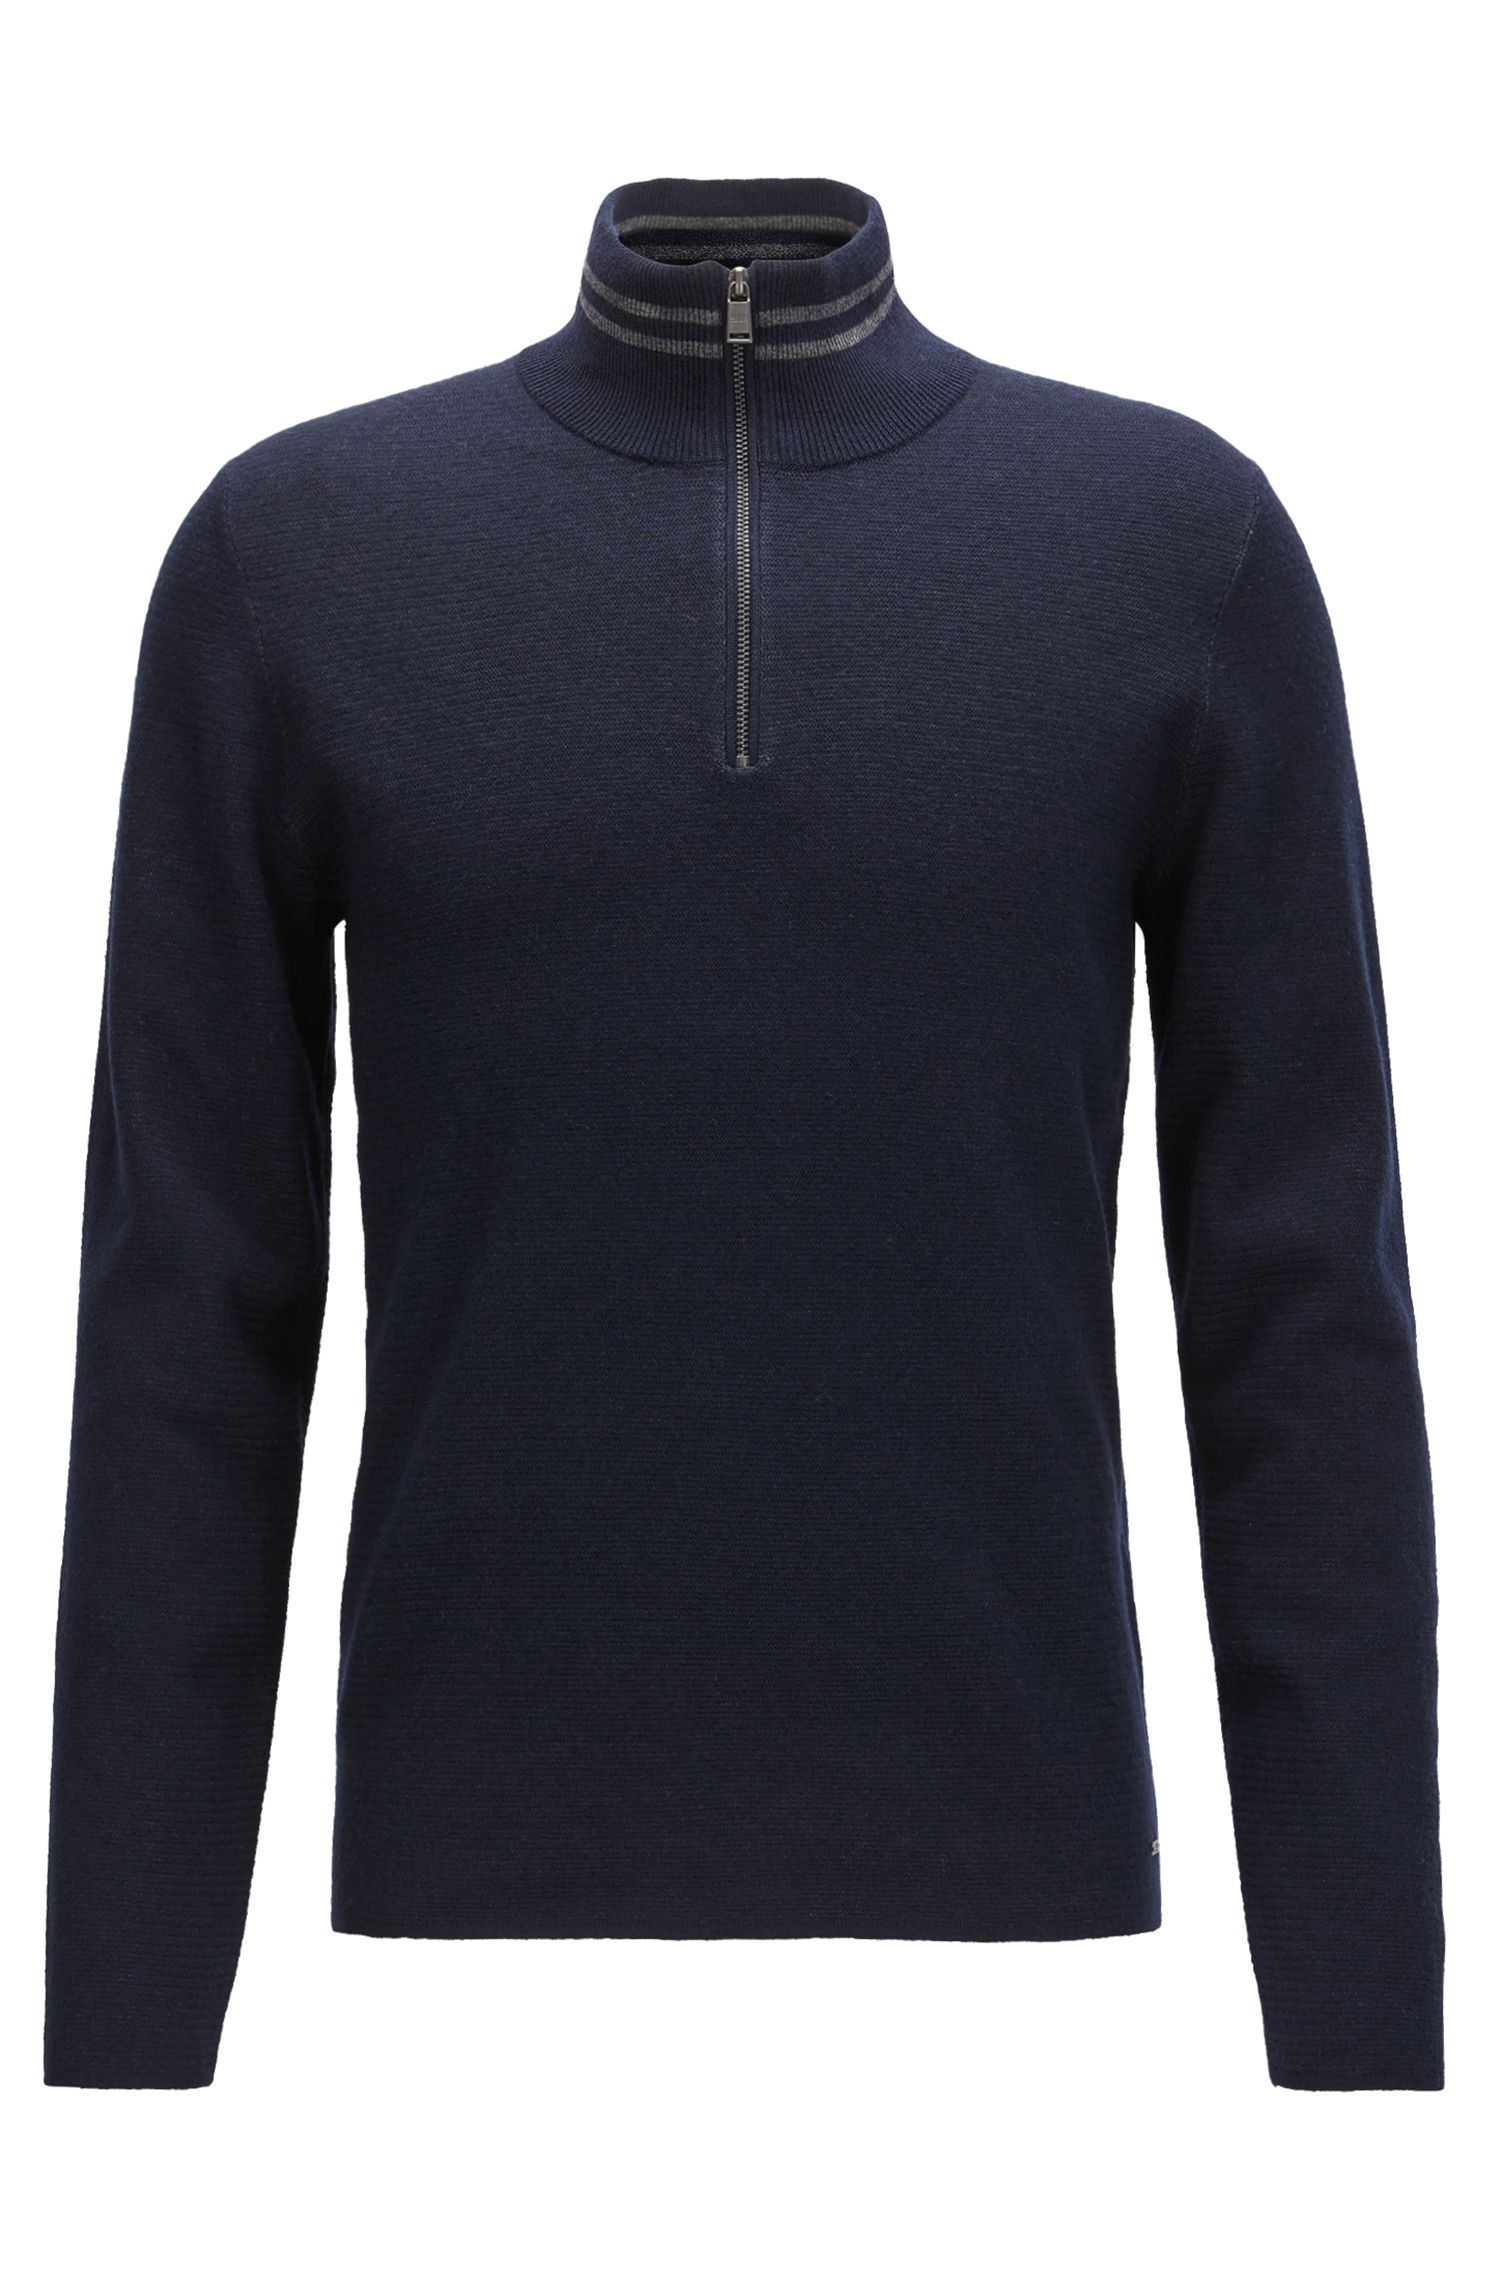 Zip-neck sweater in a structured wool-cotton blend